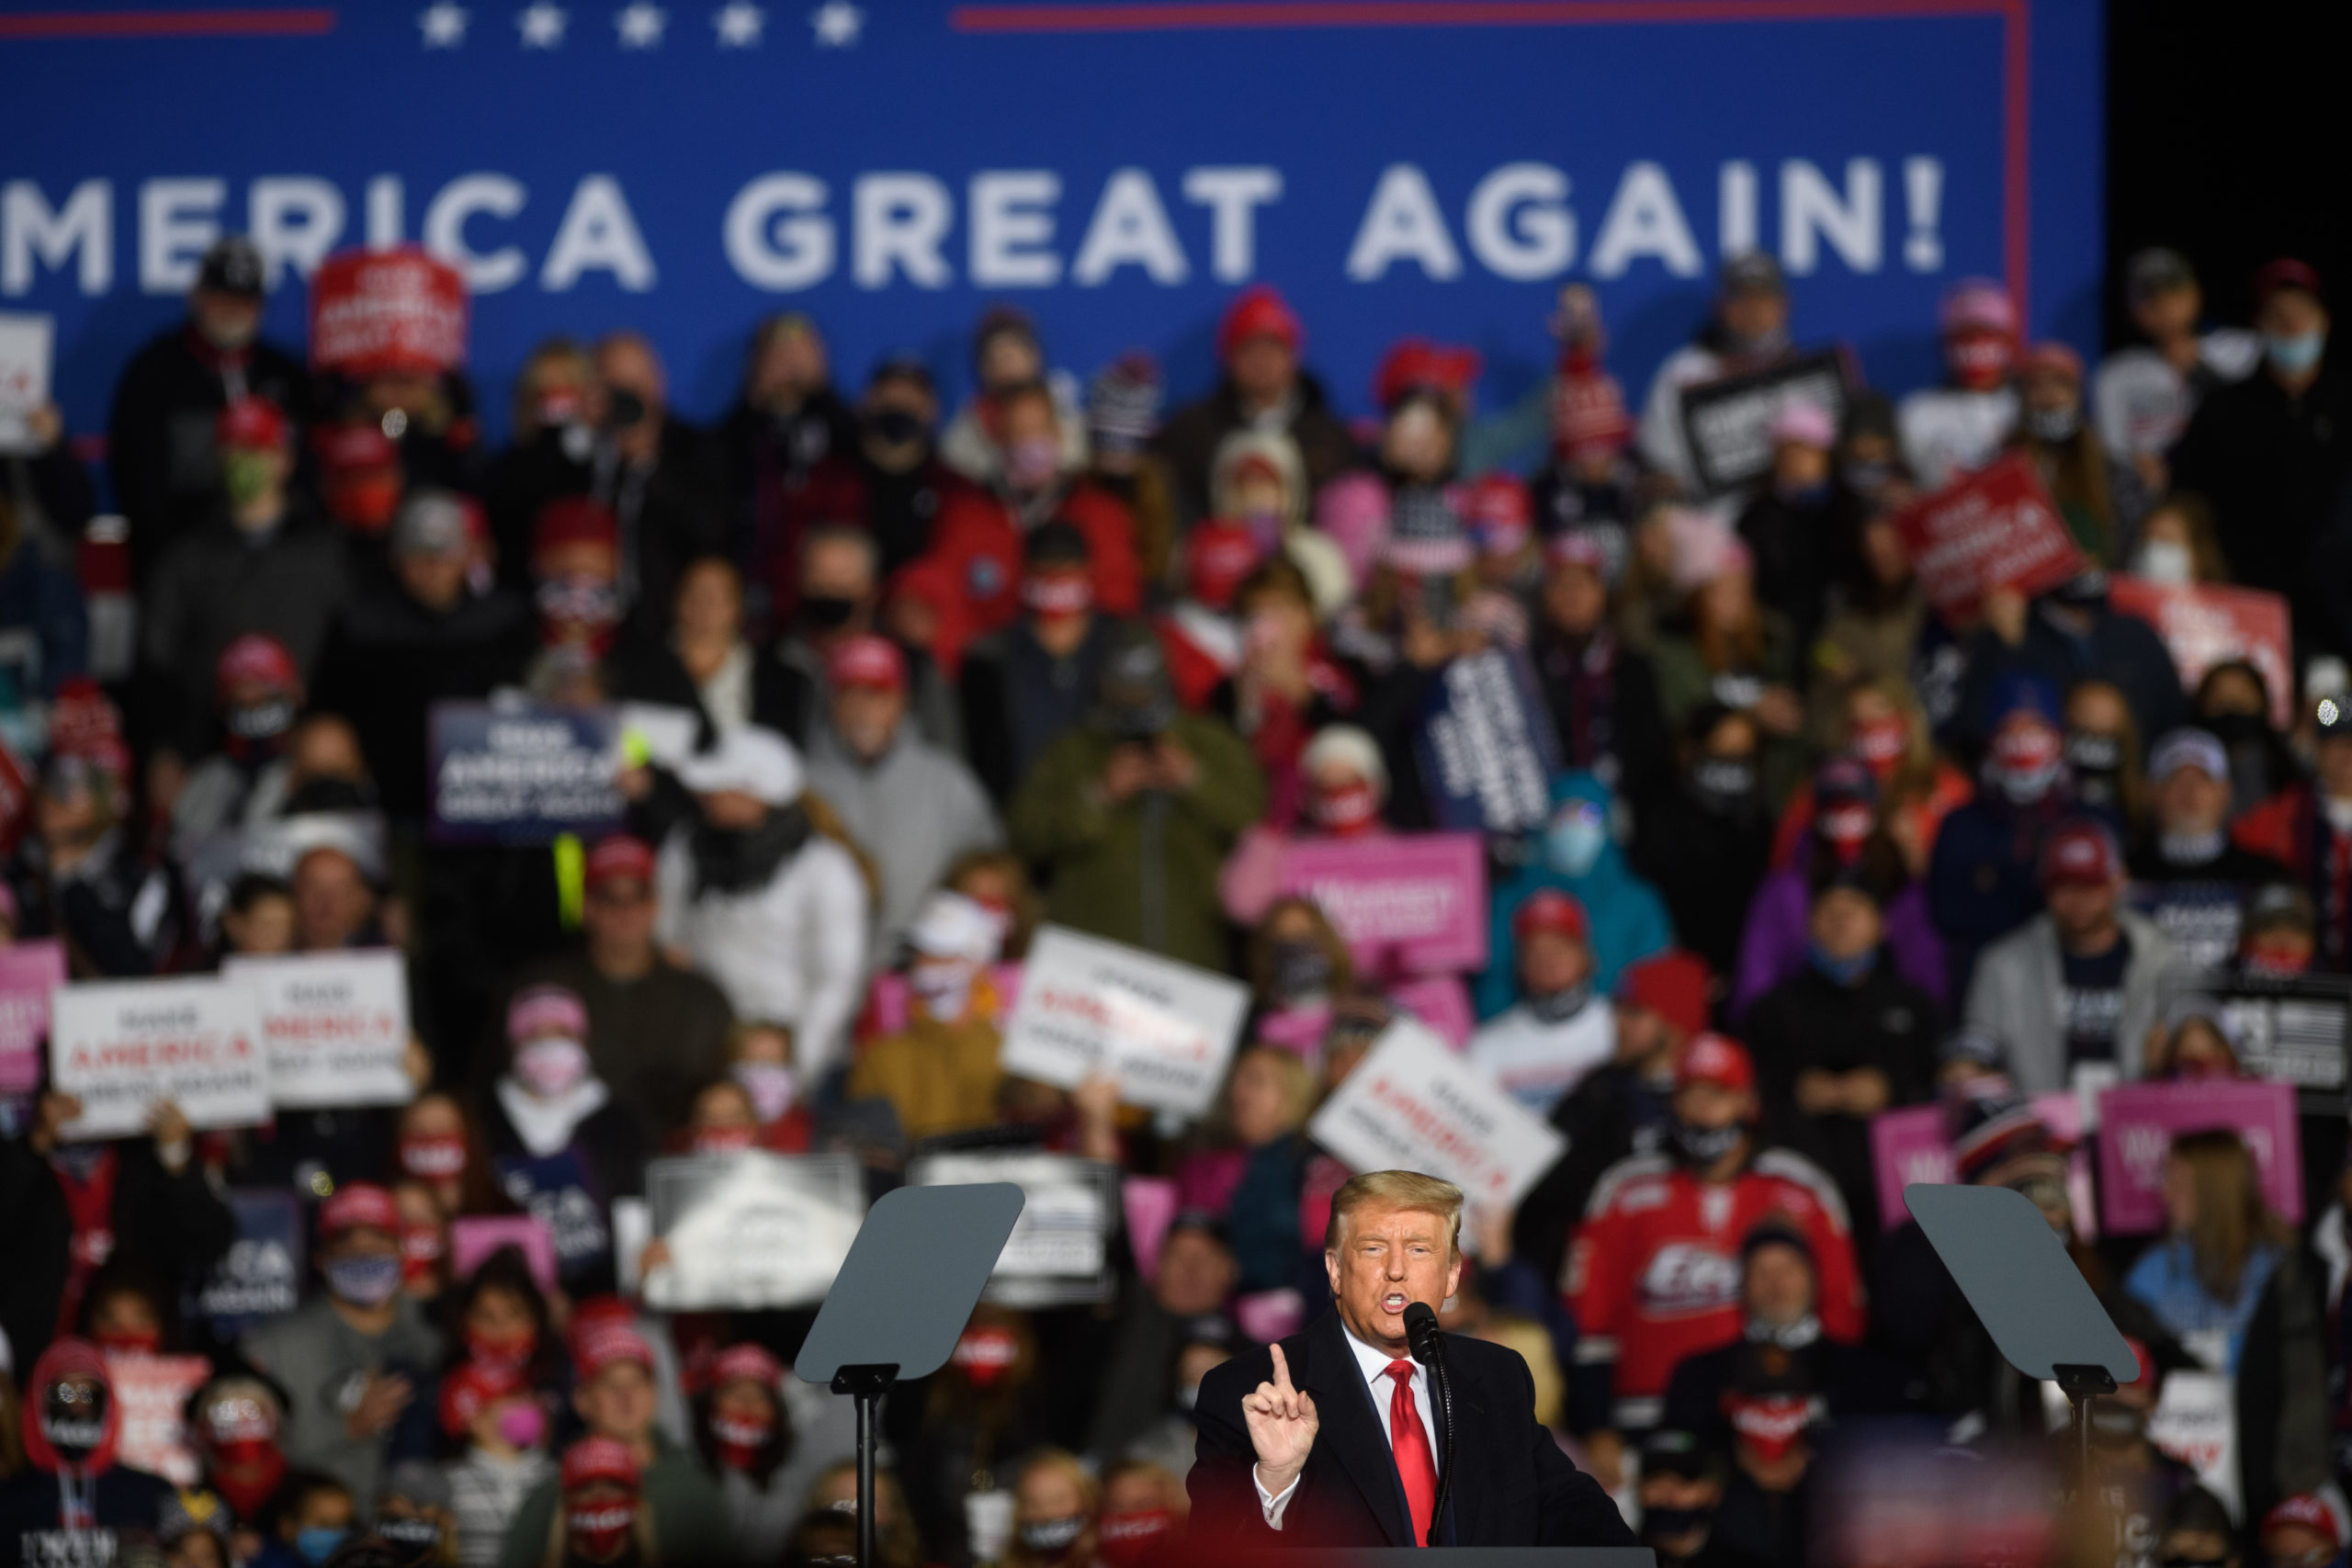 ERIE, PA - OCTOBER 20: U.S. President Donald Trump speaks at a campaign rally at North Coast Air aeronautical services at Erie International Airport on October 20, 2020 in Erie, Pennsylvania. Trump is holding the rally two days ahead of the final presidential debate. (Photo by Jeff Swensen/Getty Images)